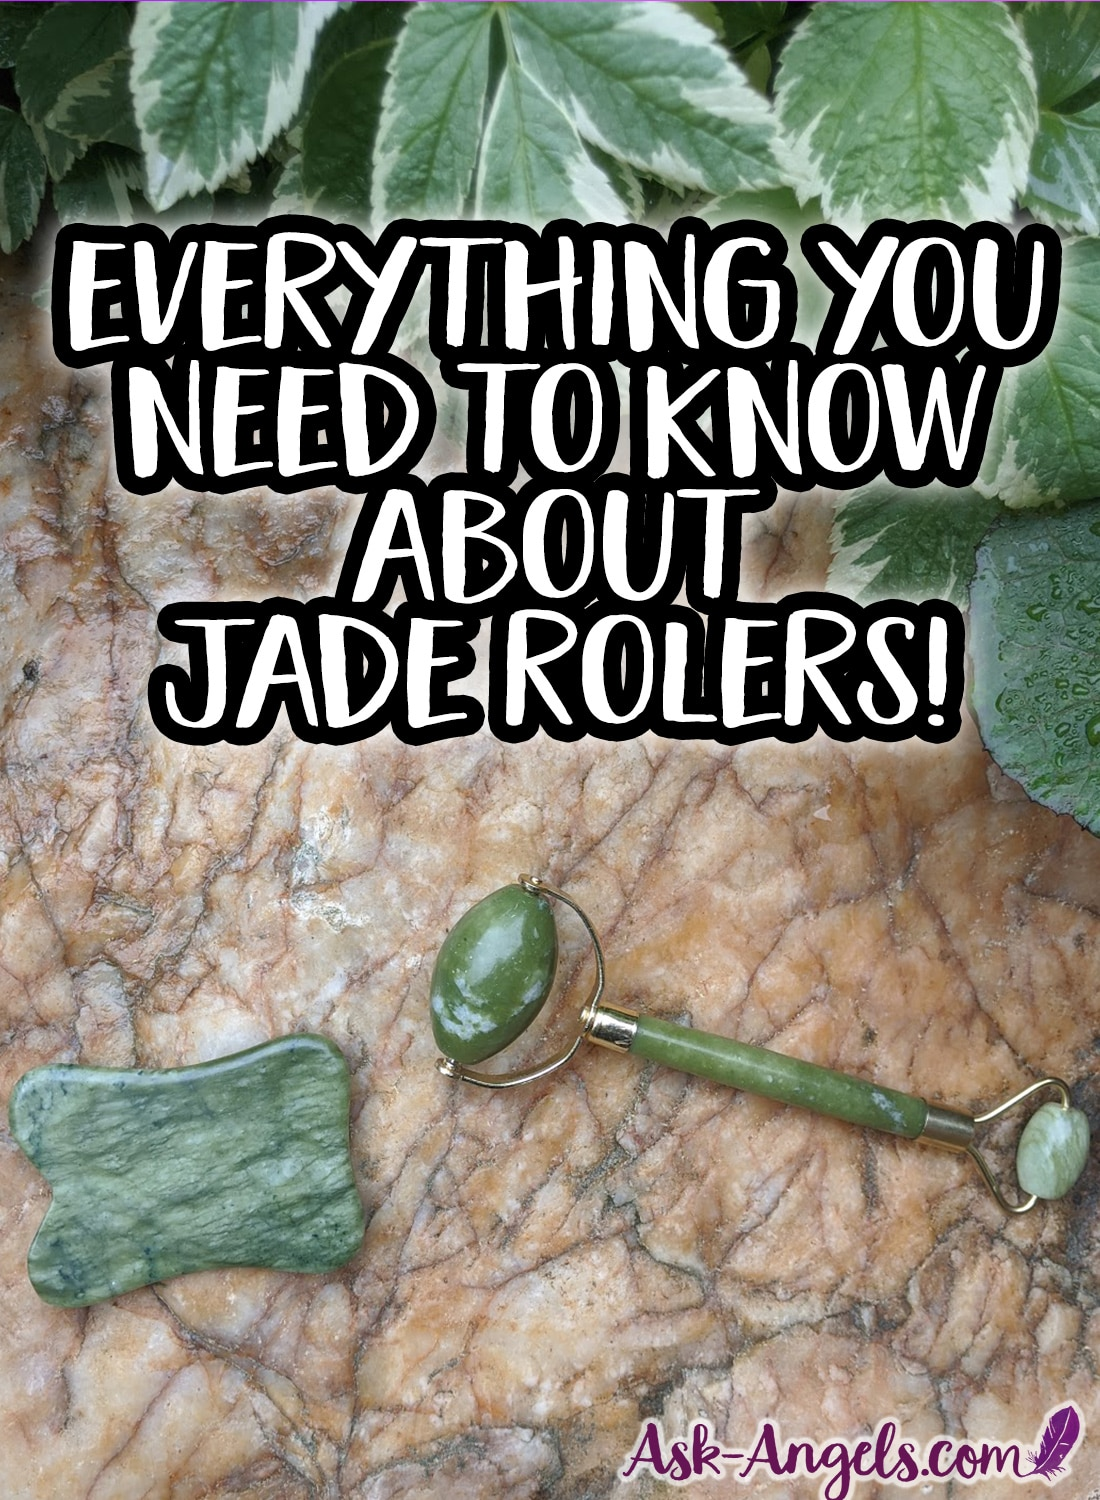 Everything you need to know about real jade rollers.